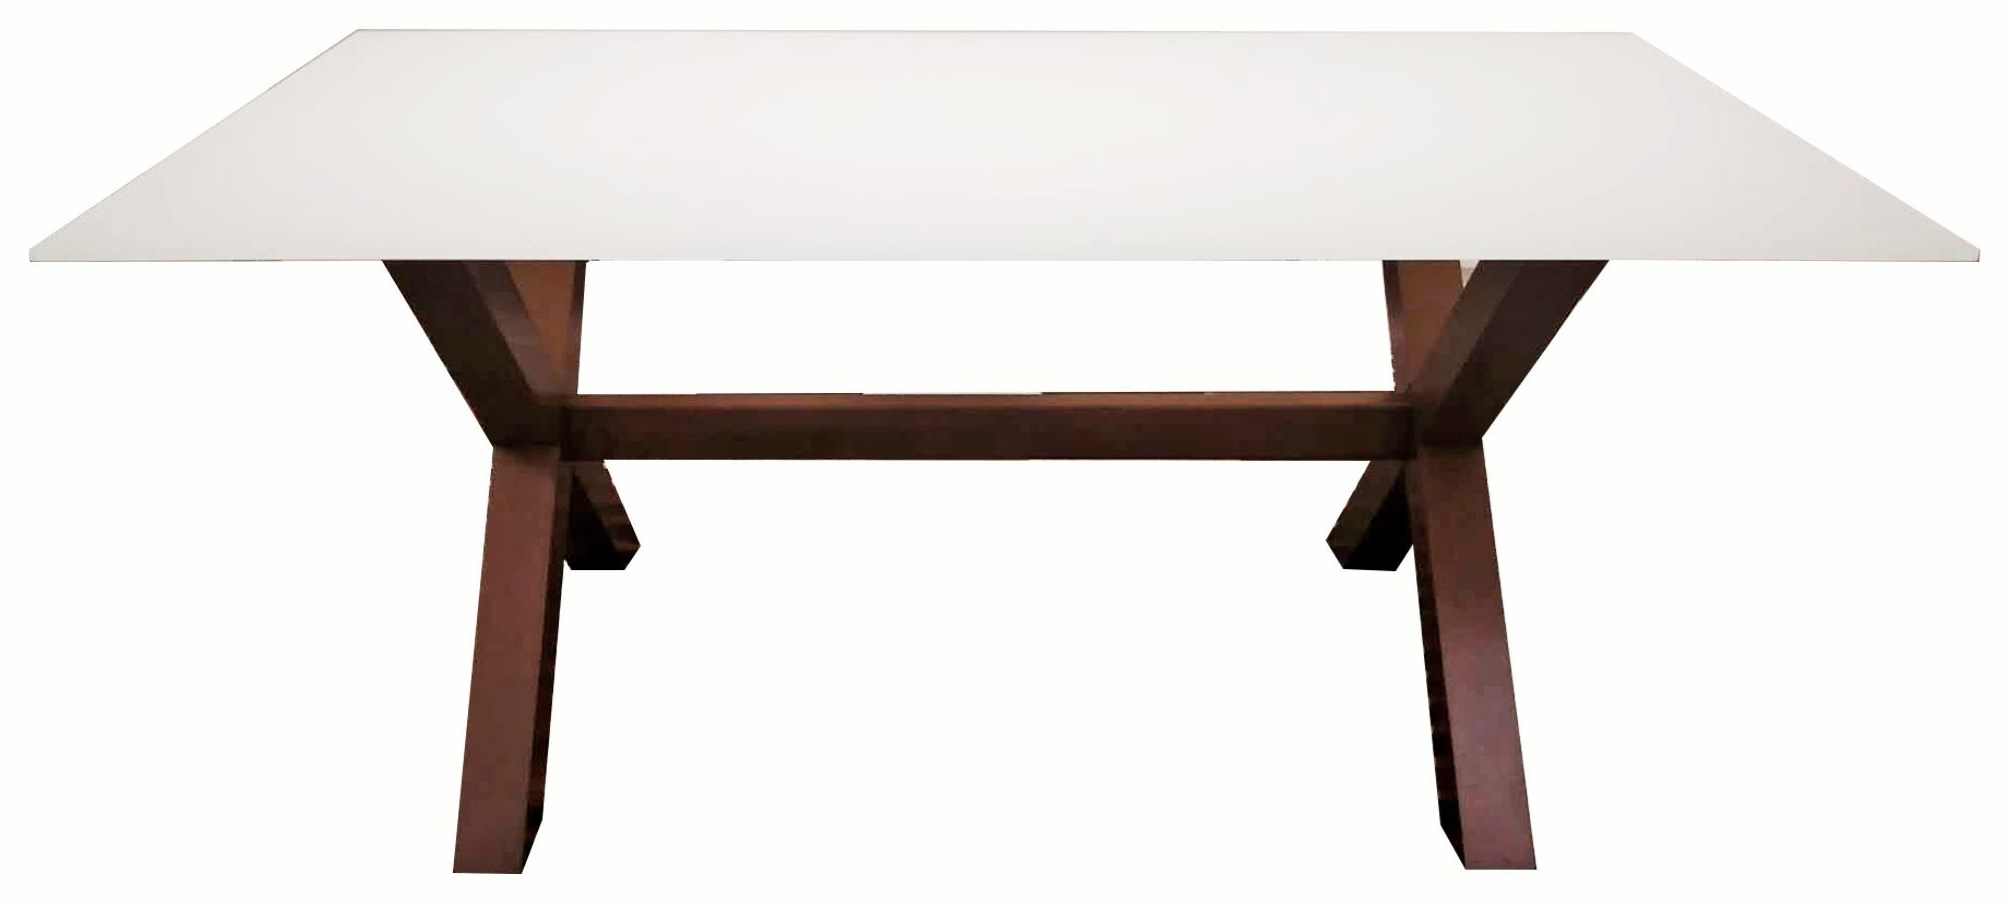 TDGL TDGL-570-T00B-729G White Glass   Table in 0W by Dinec at Upper Room Home Furnishings